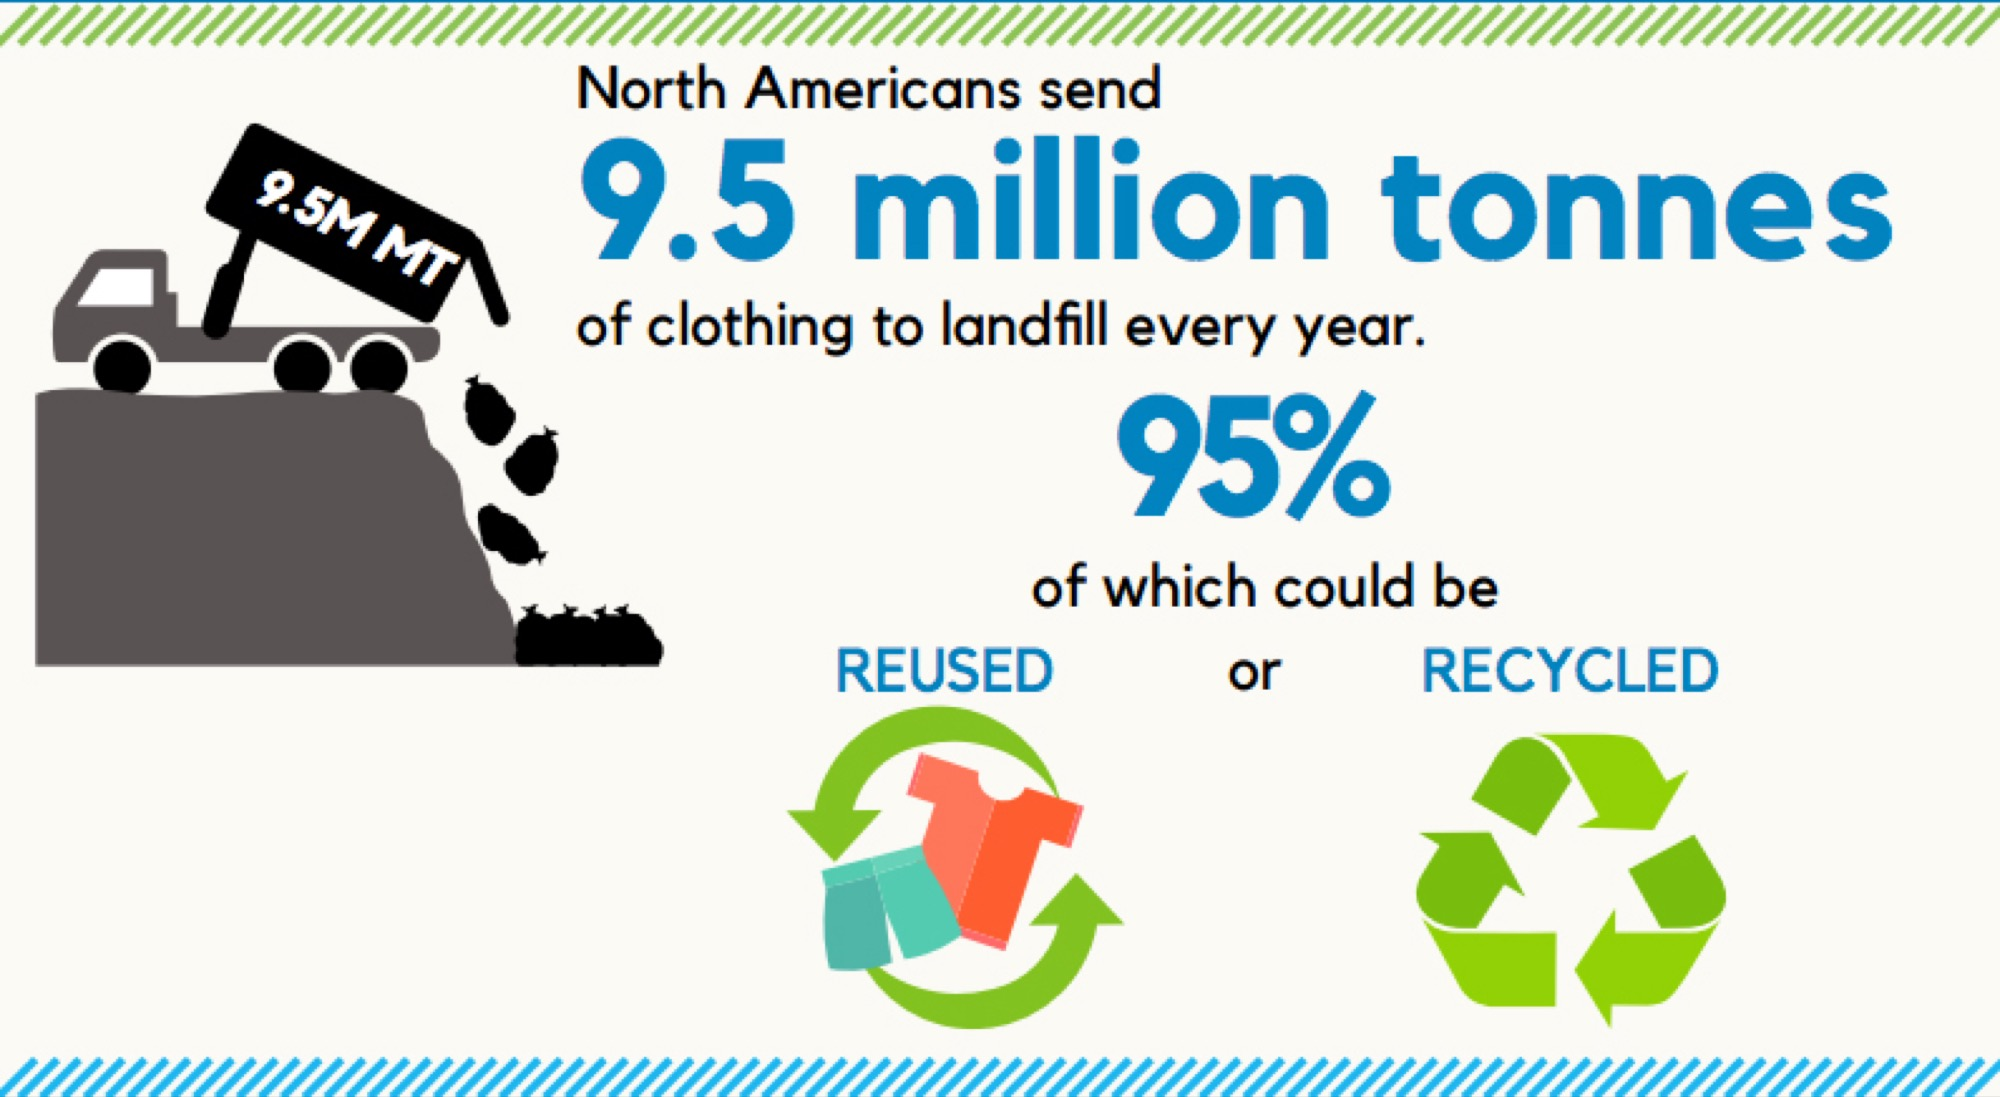 Image courtesy of Waste Reduction Week in Canada.